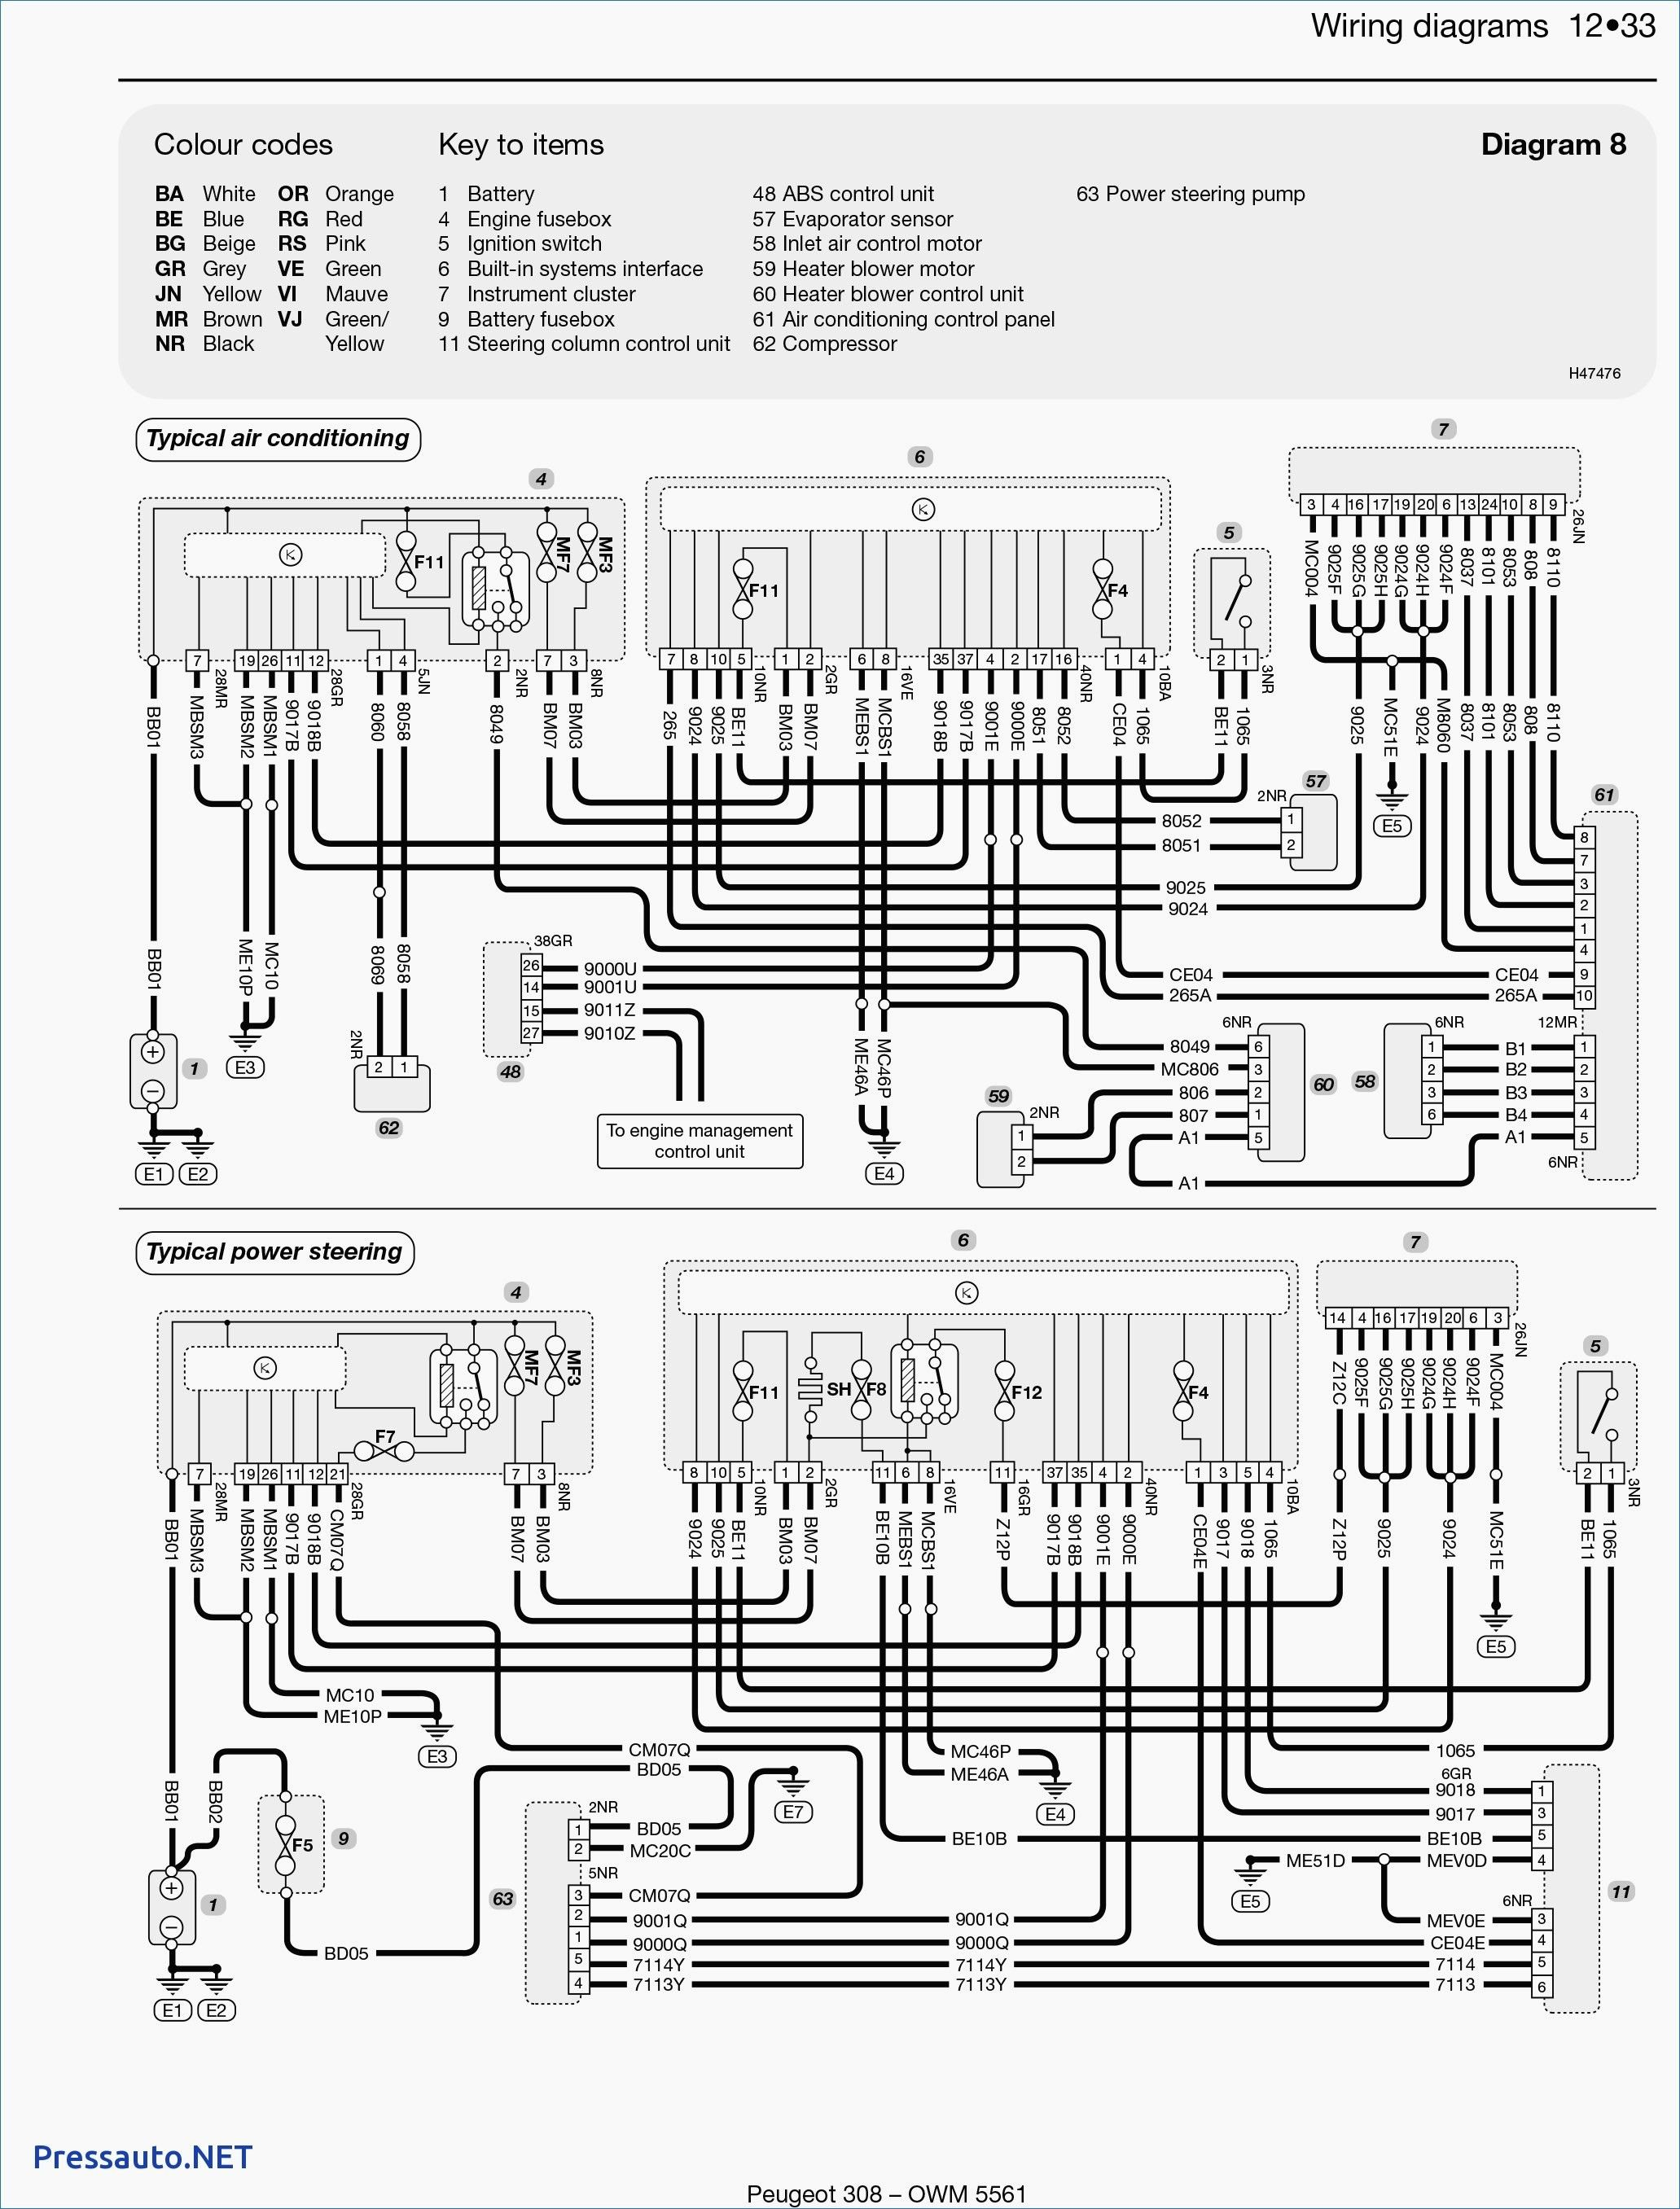 peugeot 306 hdi wiring diagram wiring diagram for peugeot 206 stereo best of fortable in ... peugeot 306 radio wiring